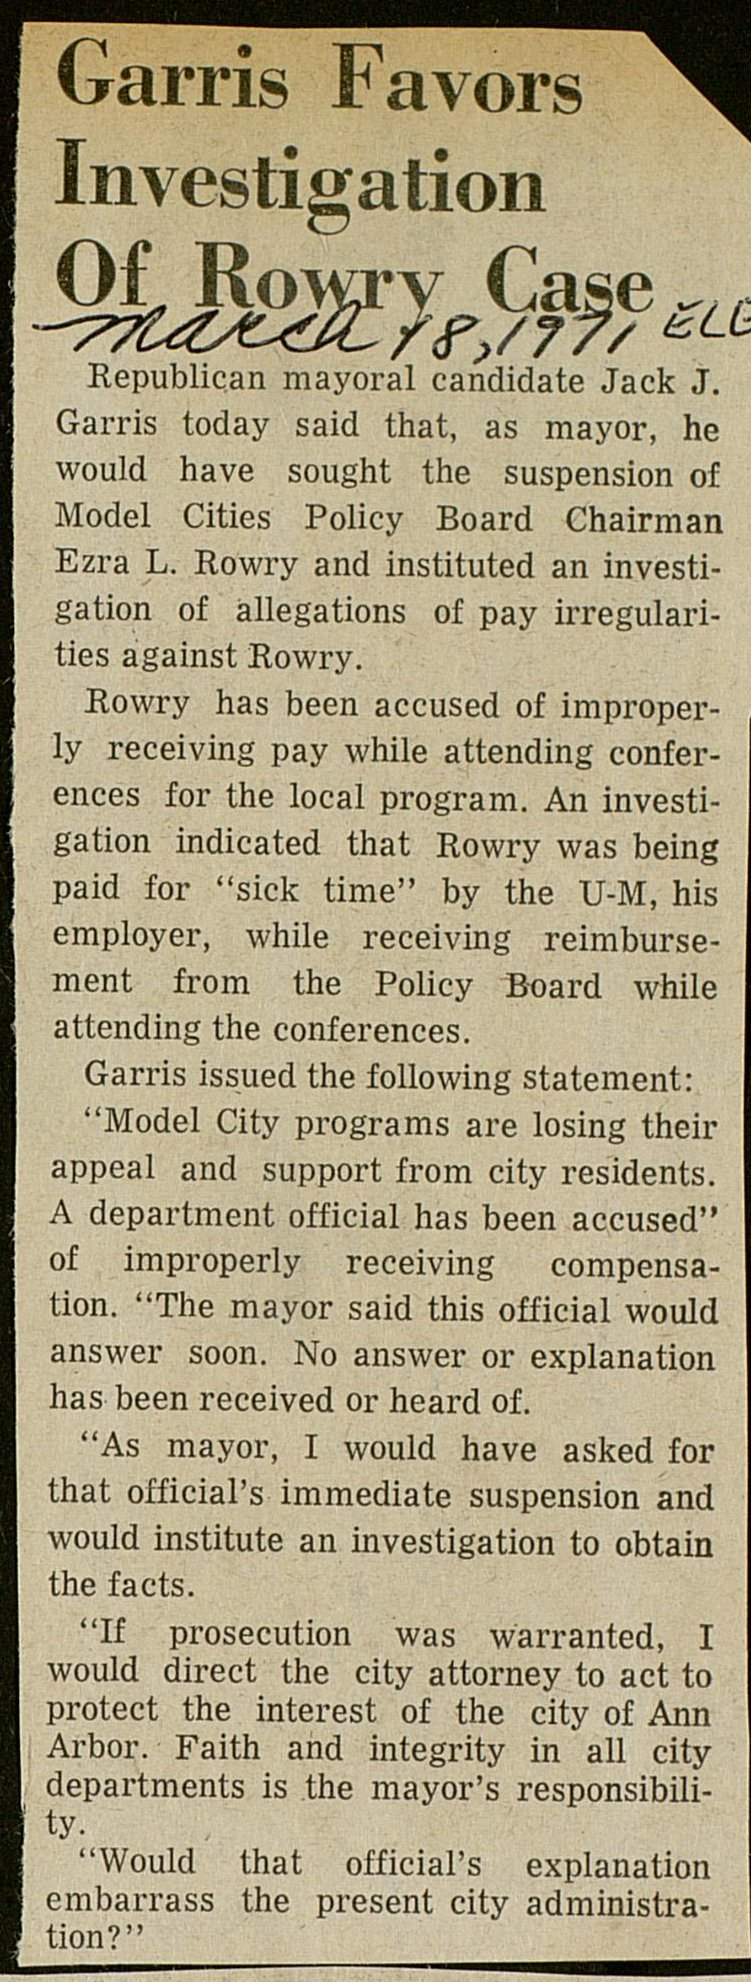 Garris Favors Investigation Of Rowry Case image